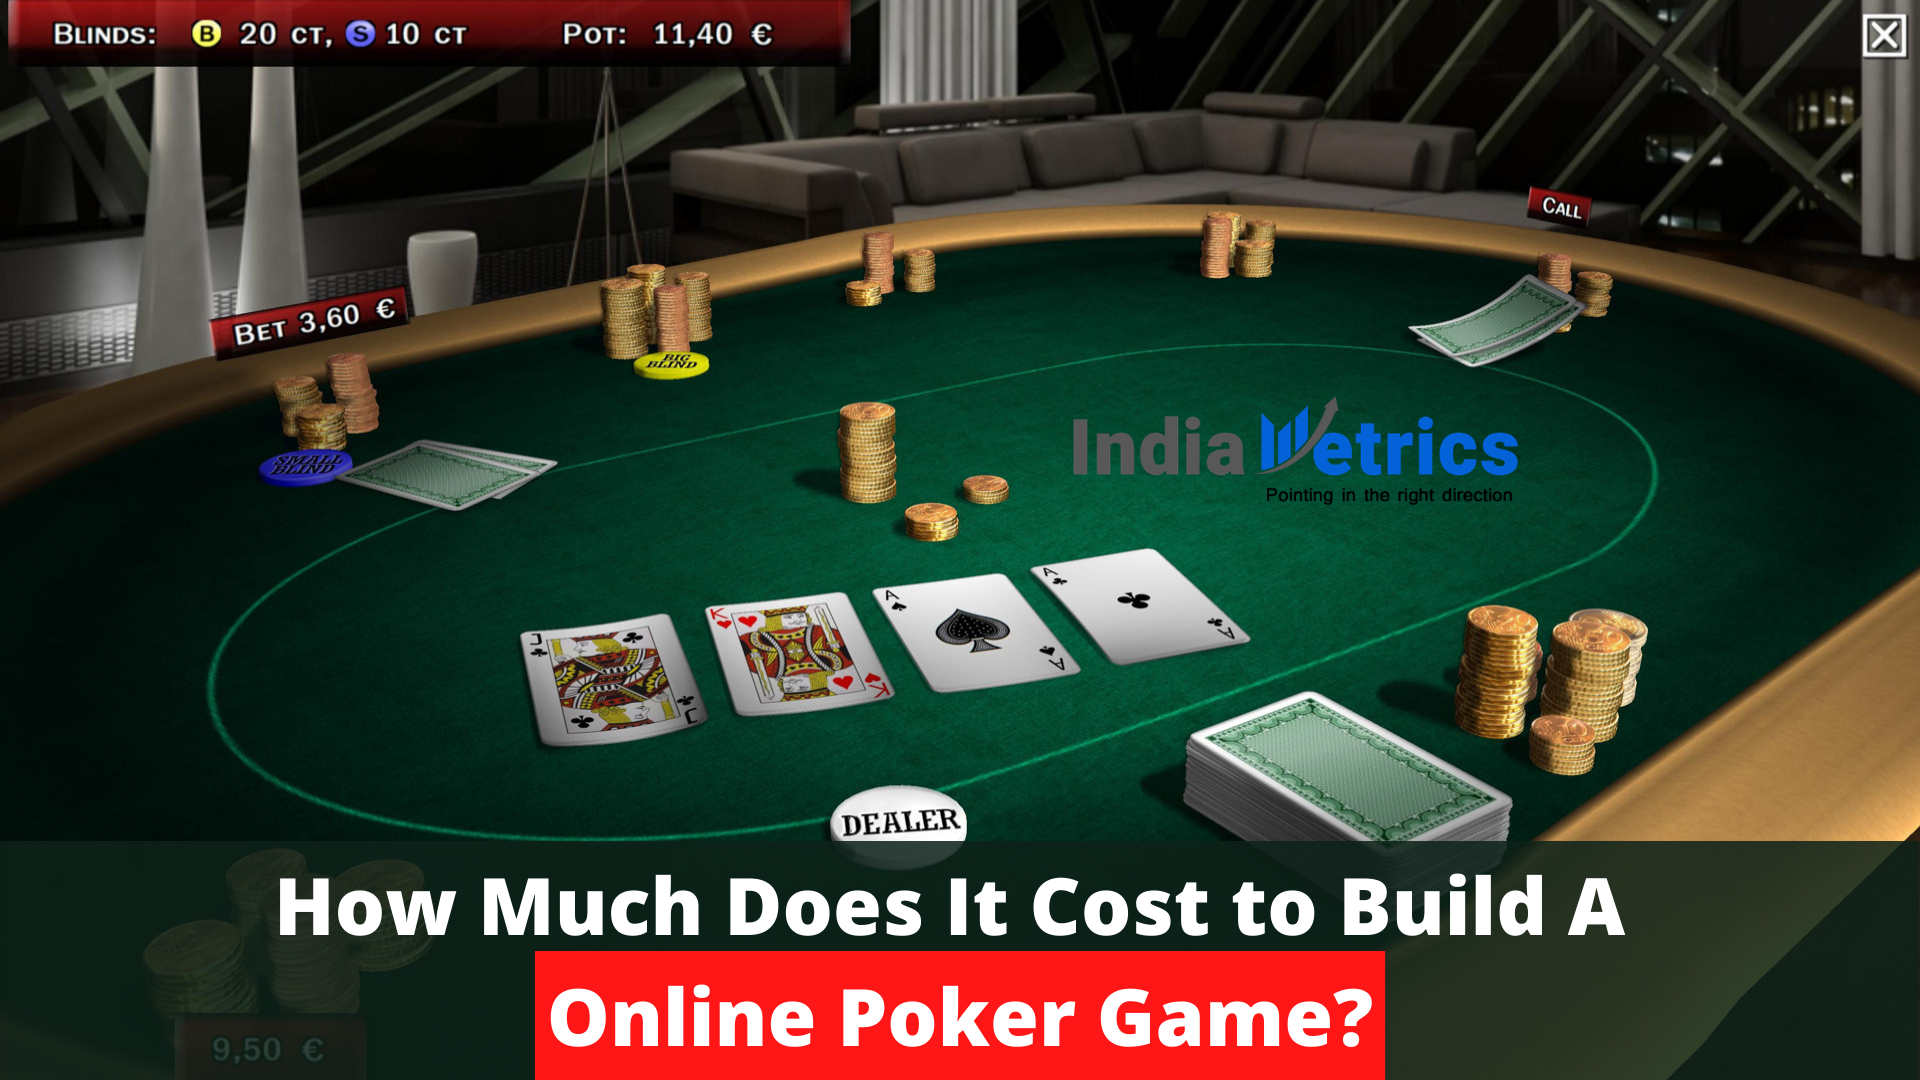 How Much Does It Cost To Build A Online Poker Game By India Metrics Mar 2021 Medium